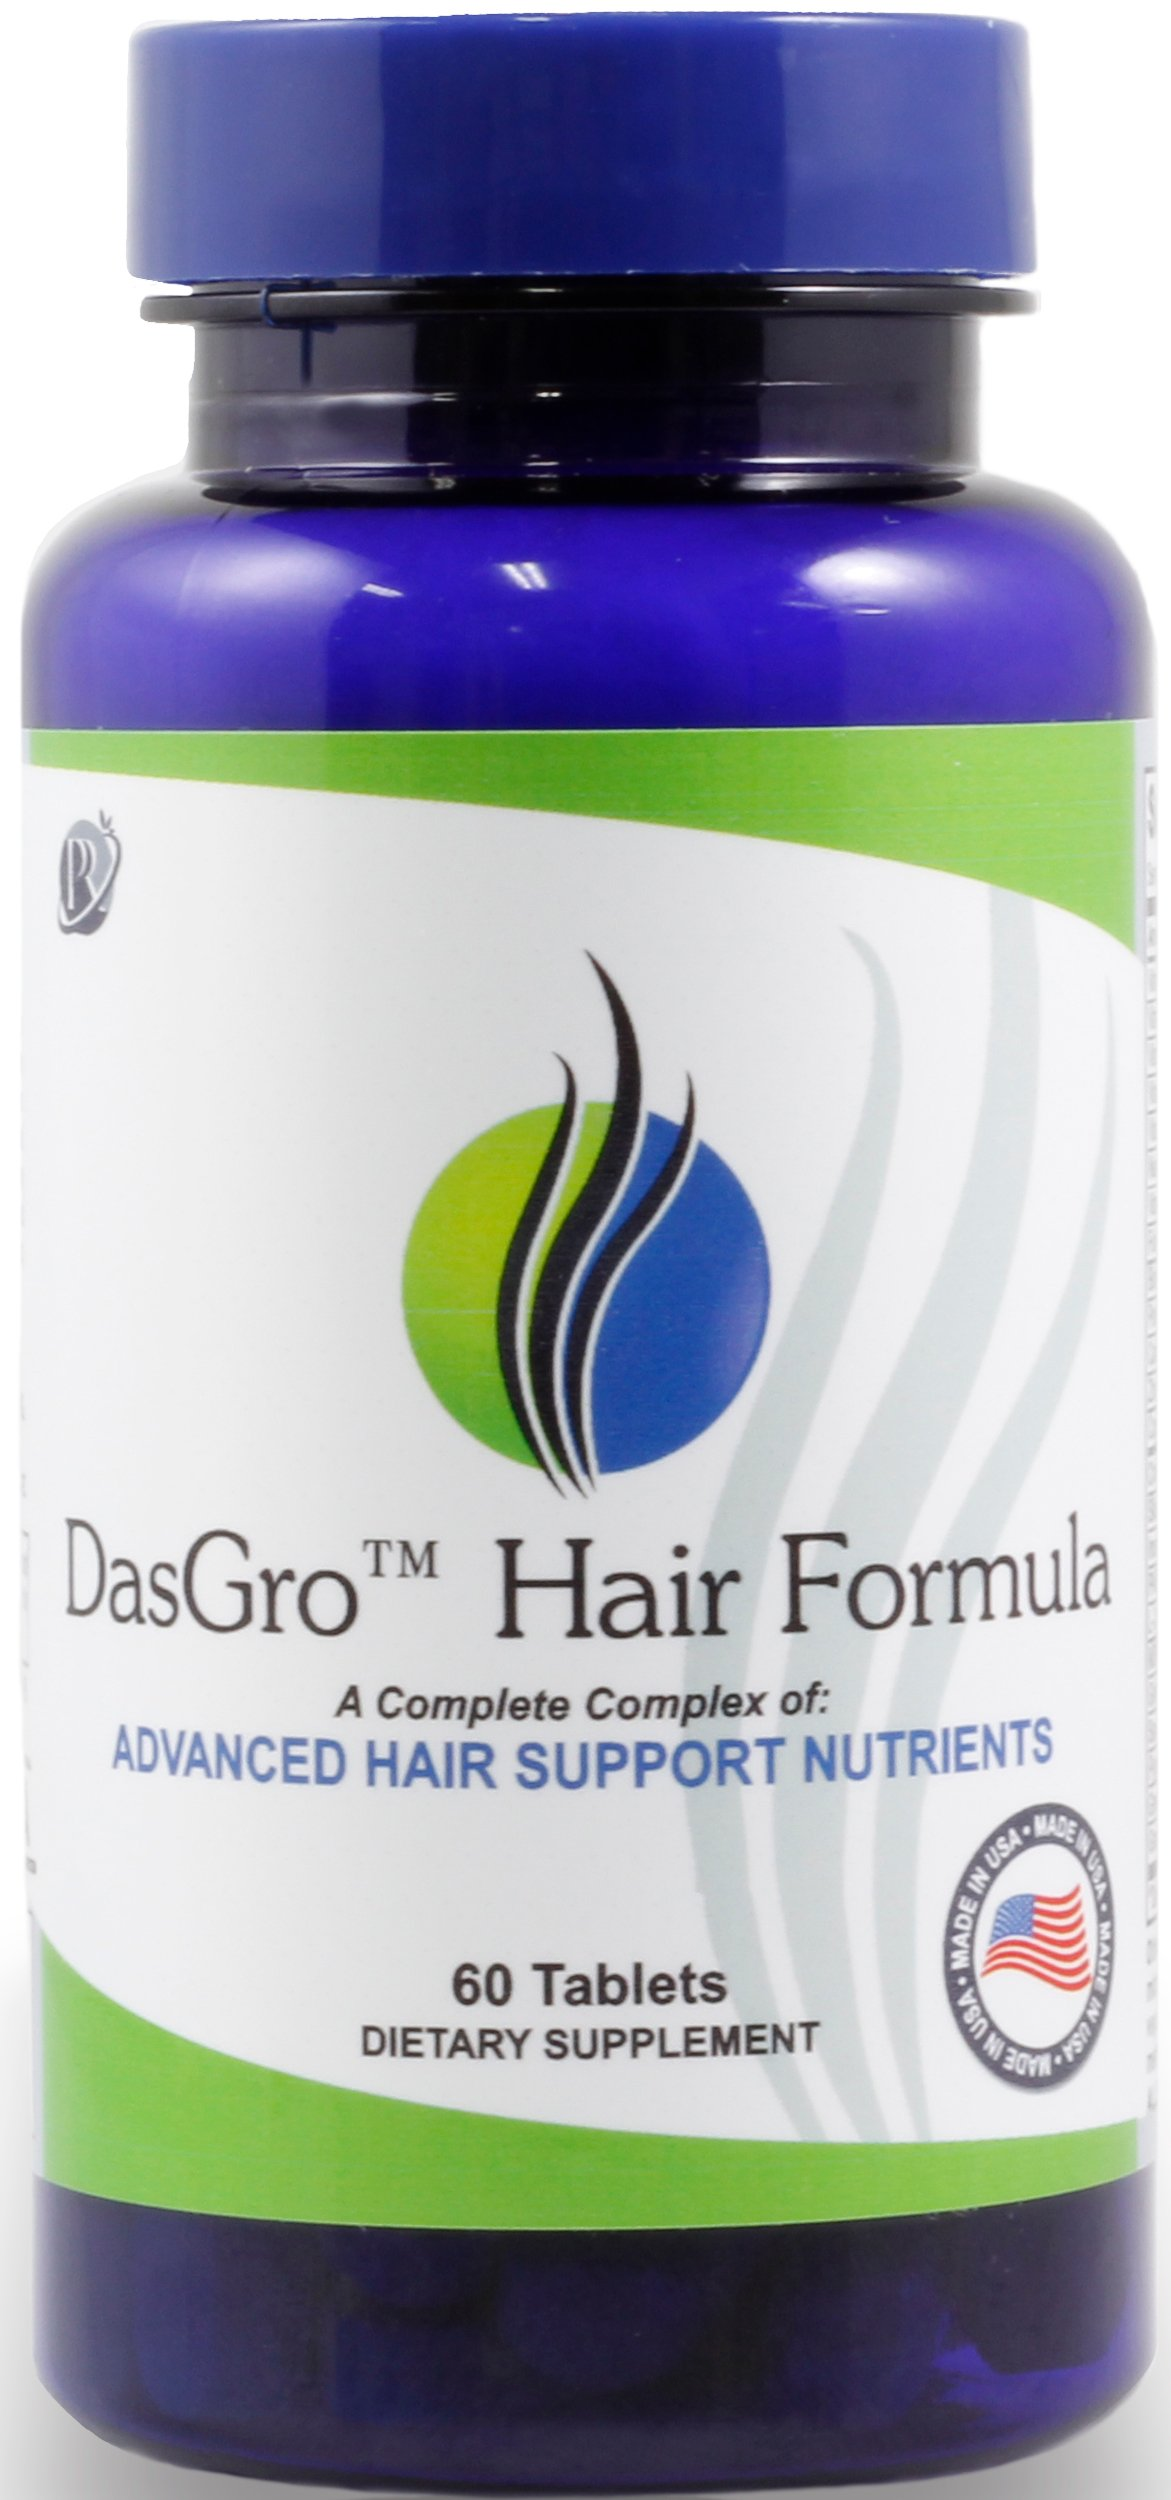 DasGro Hair Growth Vitamins With Biotin & DHT Blocker, Stops Hair Loss, Thinning, Balding, And Promotes Hair Regrowth In Men & Women, All Hair Types, 30 Day Supply by PURE PLANT HOME (Image #1)